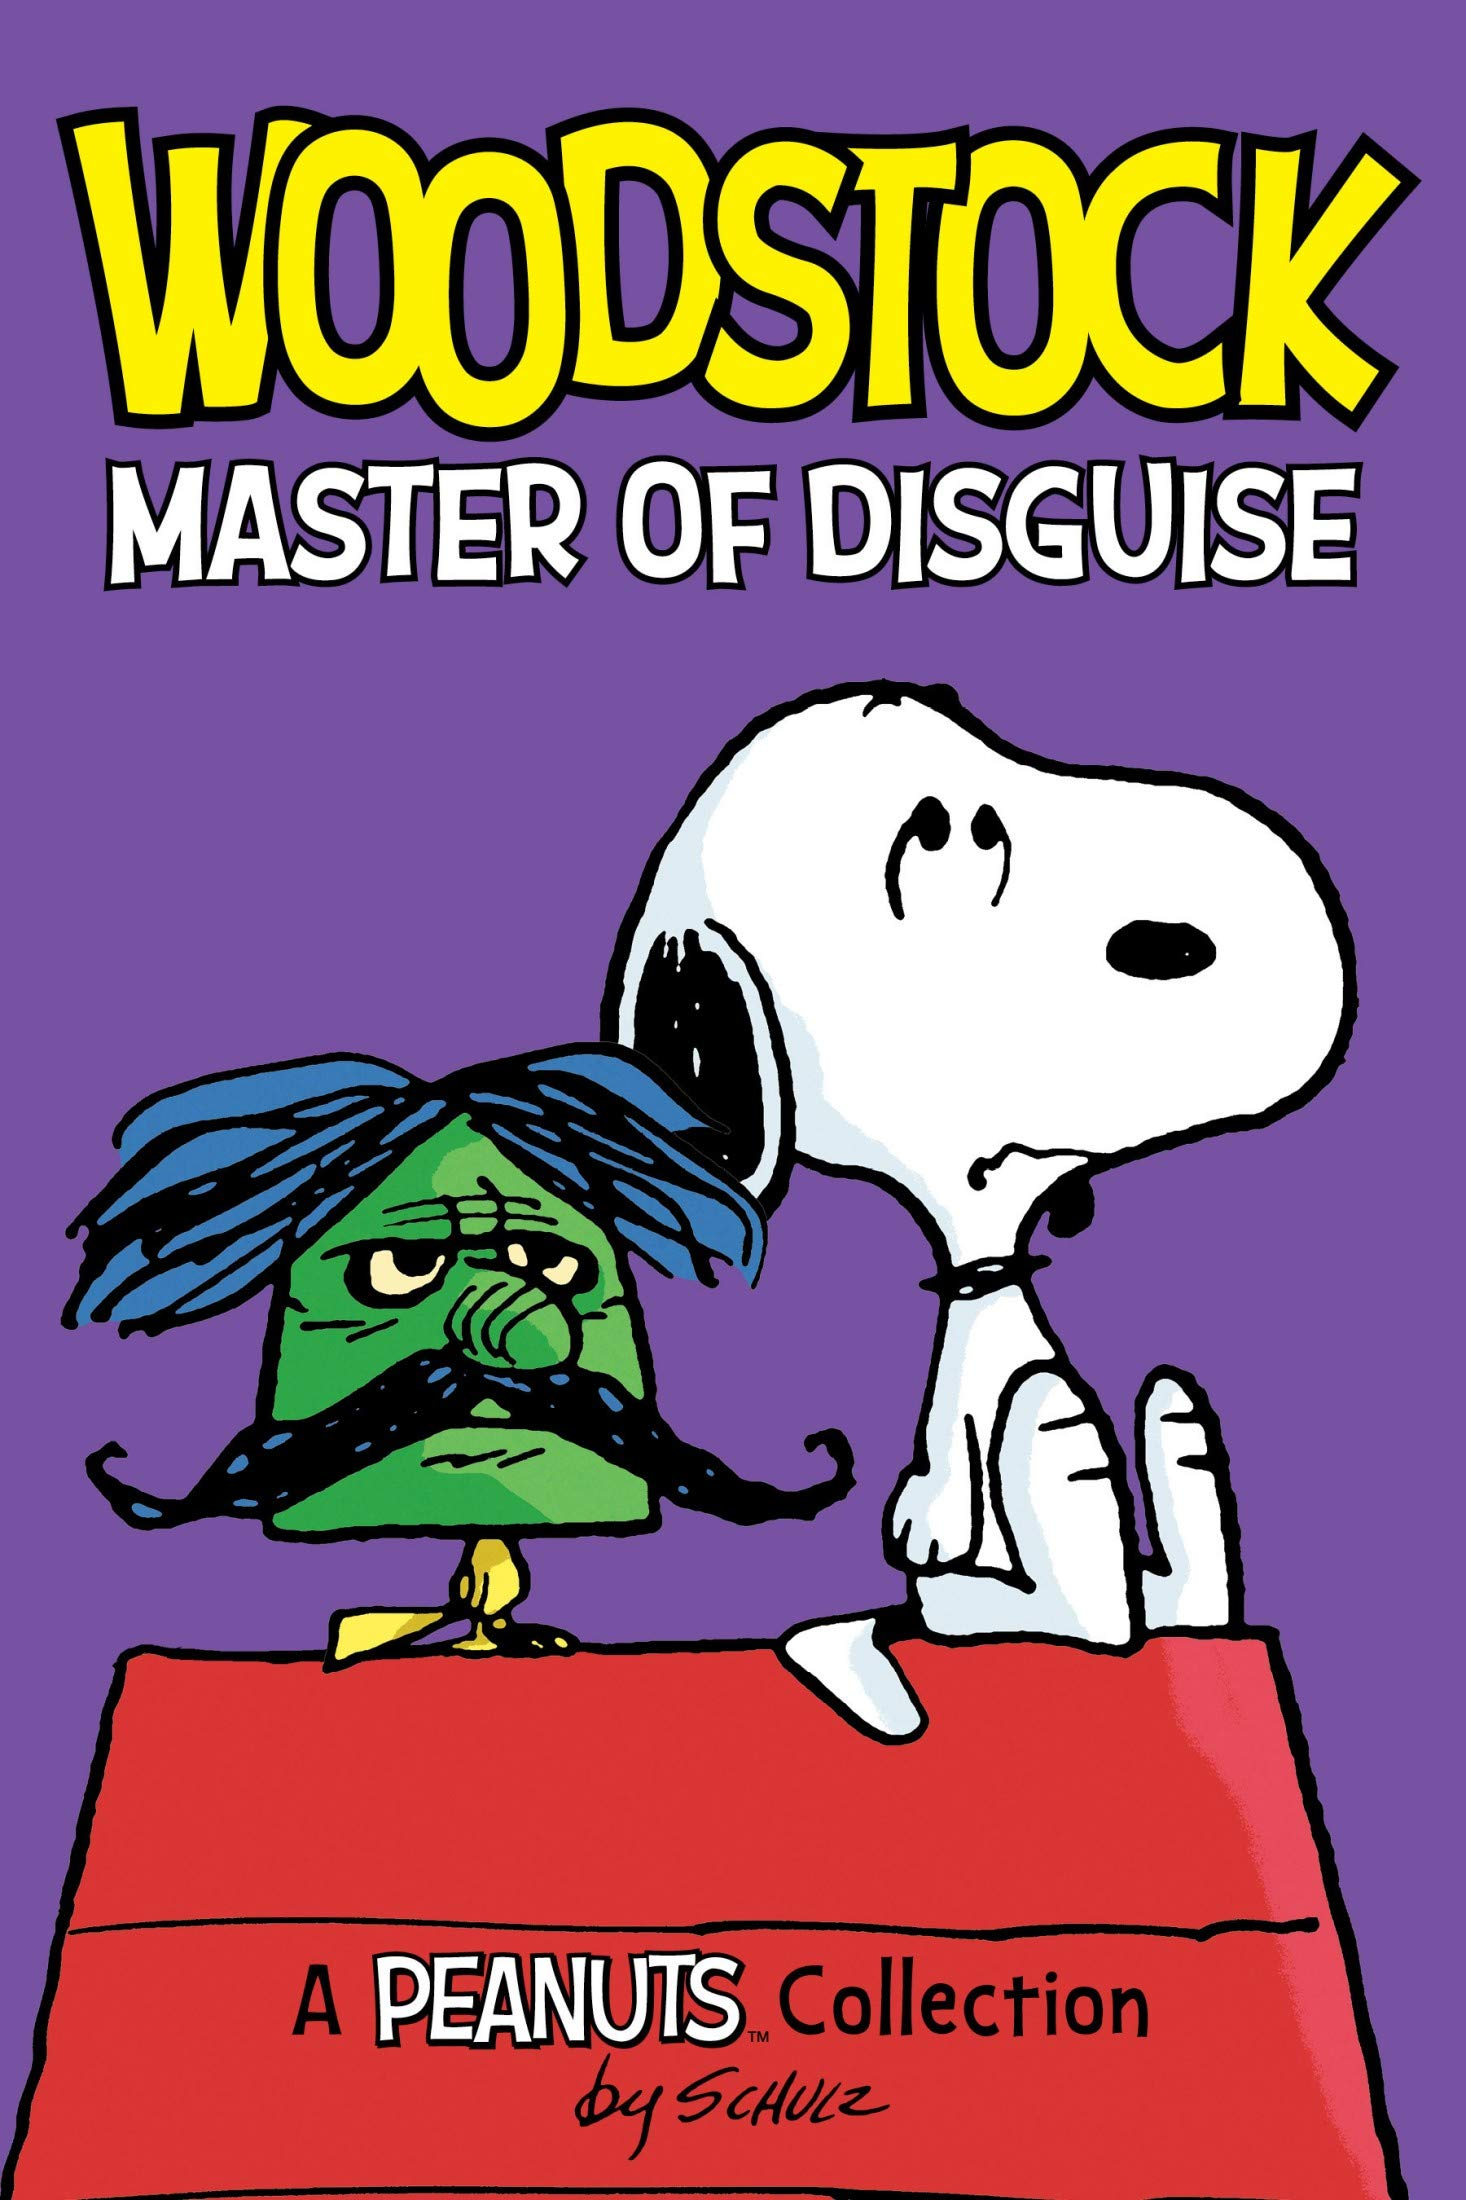 MasterDisguise: Vol 14 Great Snoopy Comic Peanut Graphic Novels For Young & Teens , Adults